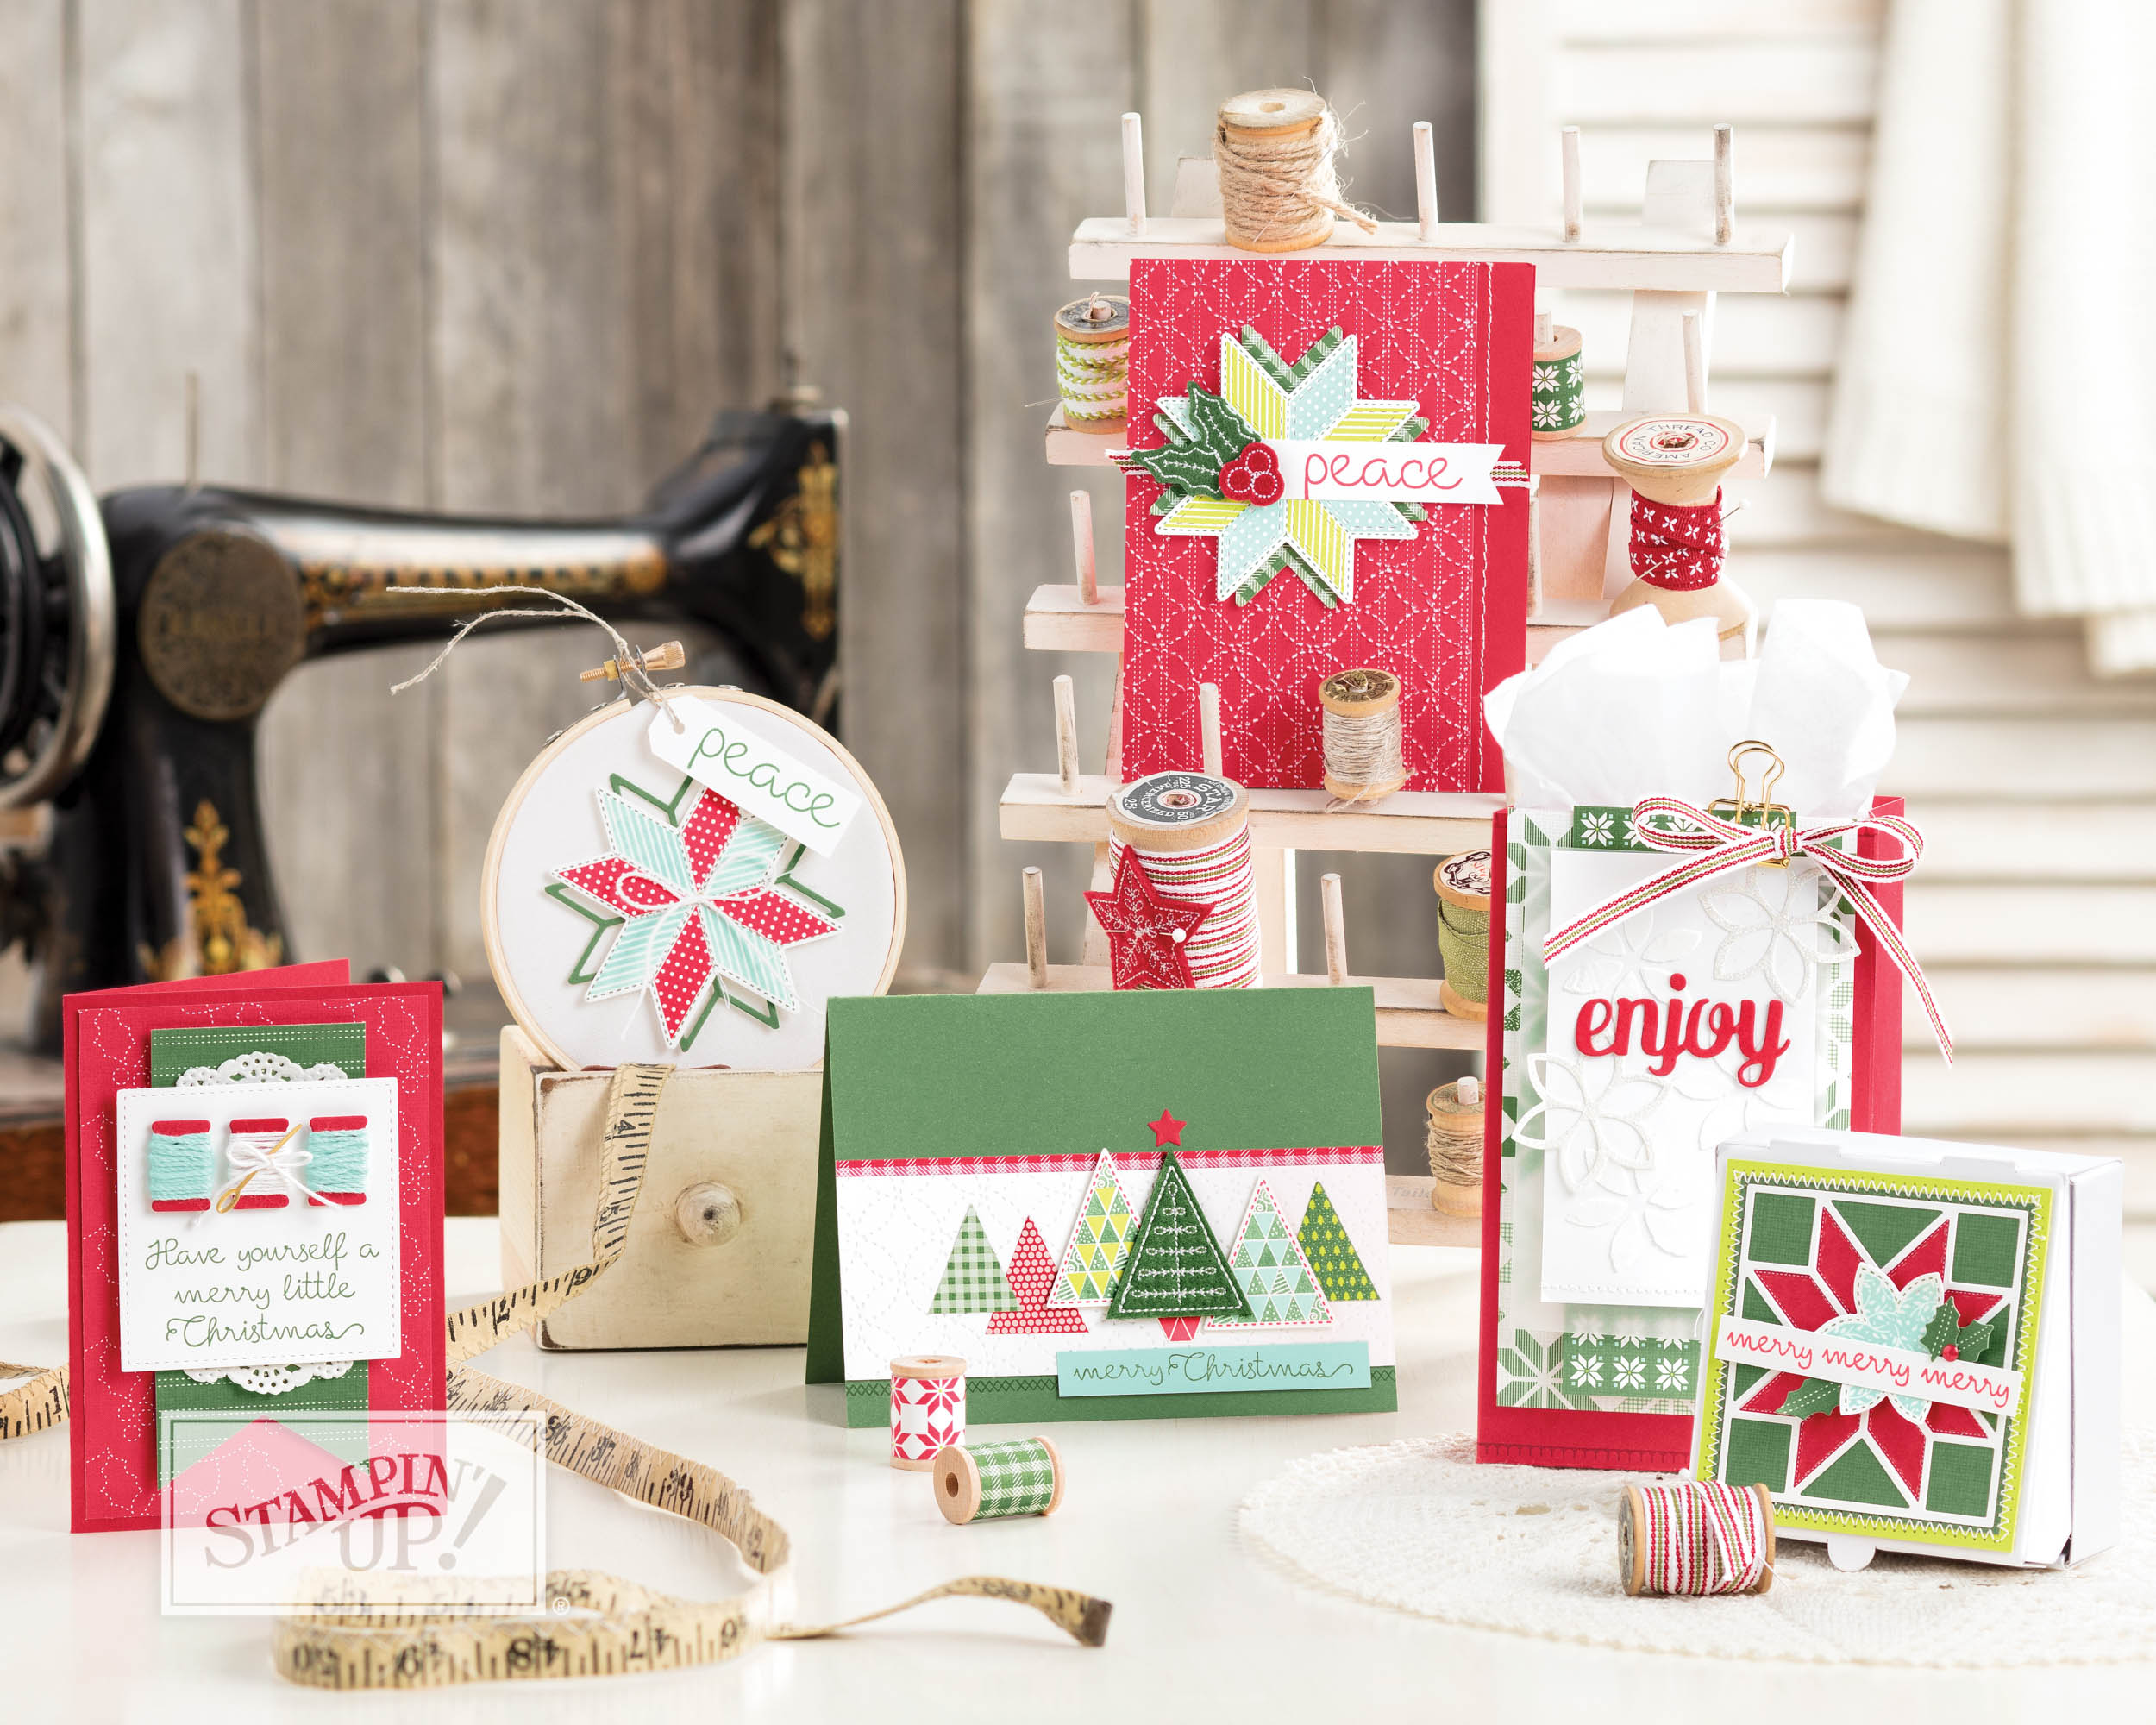 Christmas Quilt with Wendy Lee, Stampin Up product video, stamps, stamping, #creativeleeyours, creativelyyours, handmade